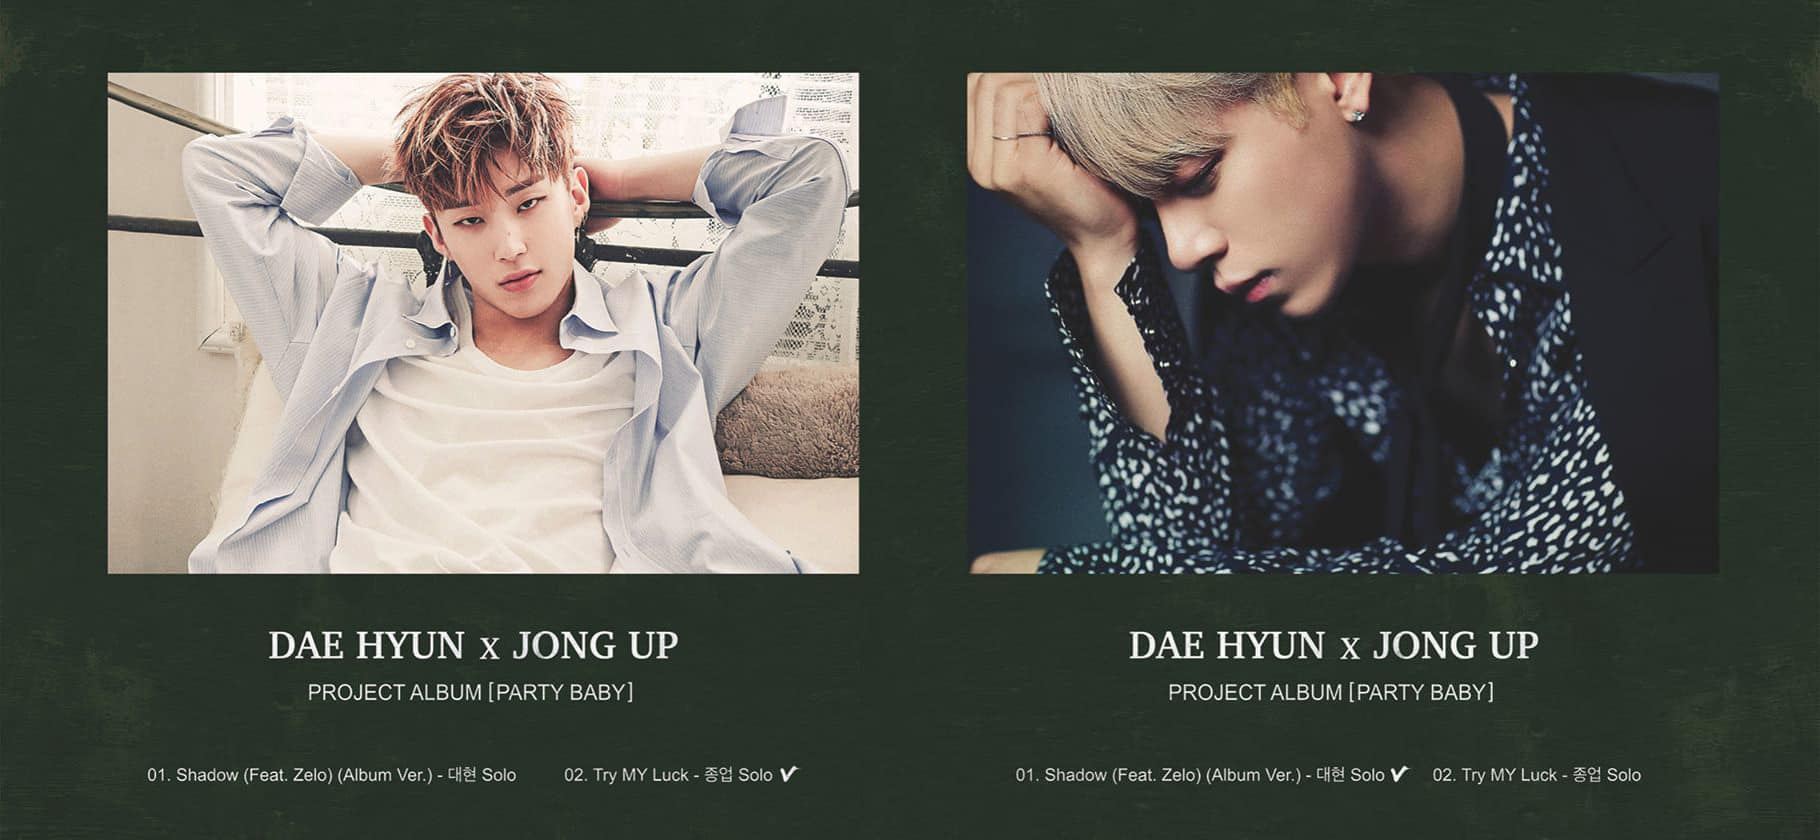 BAP Daehyun And Jongup Party Baby Project Album